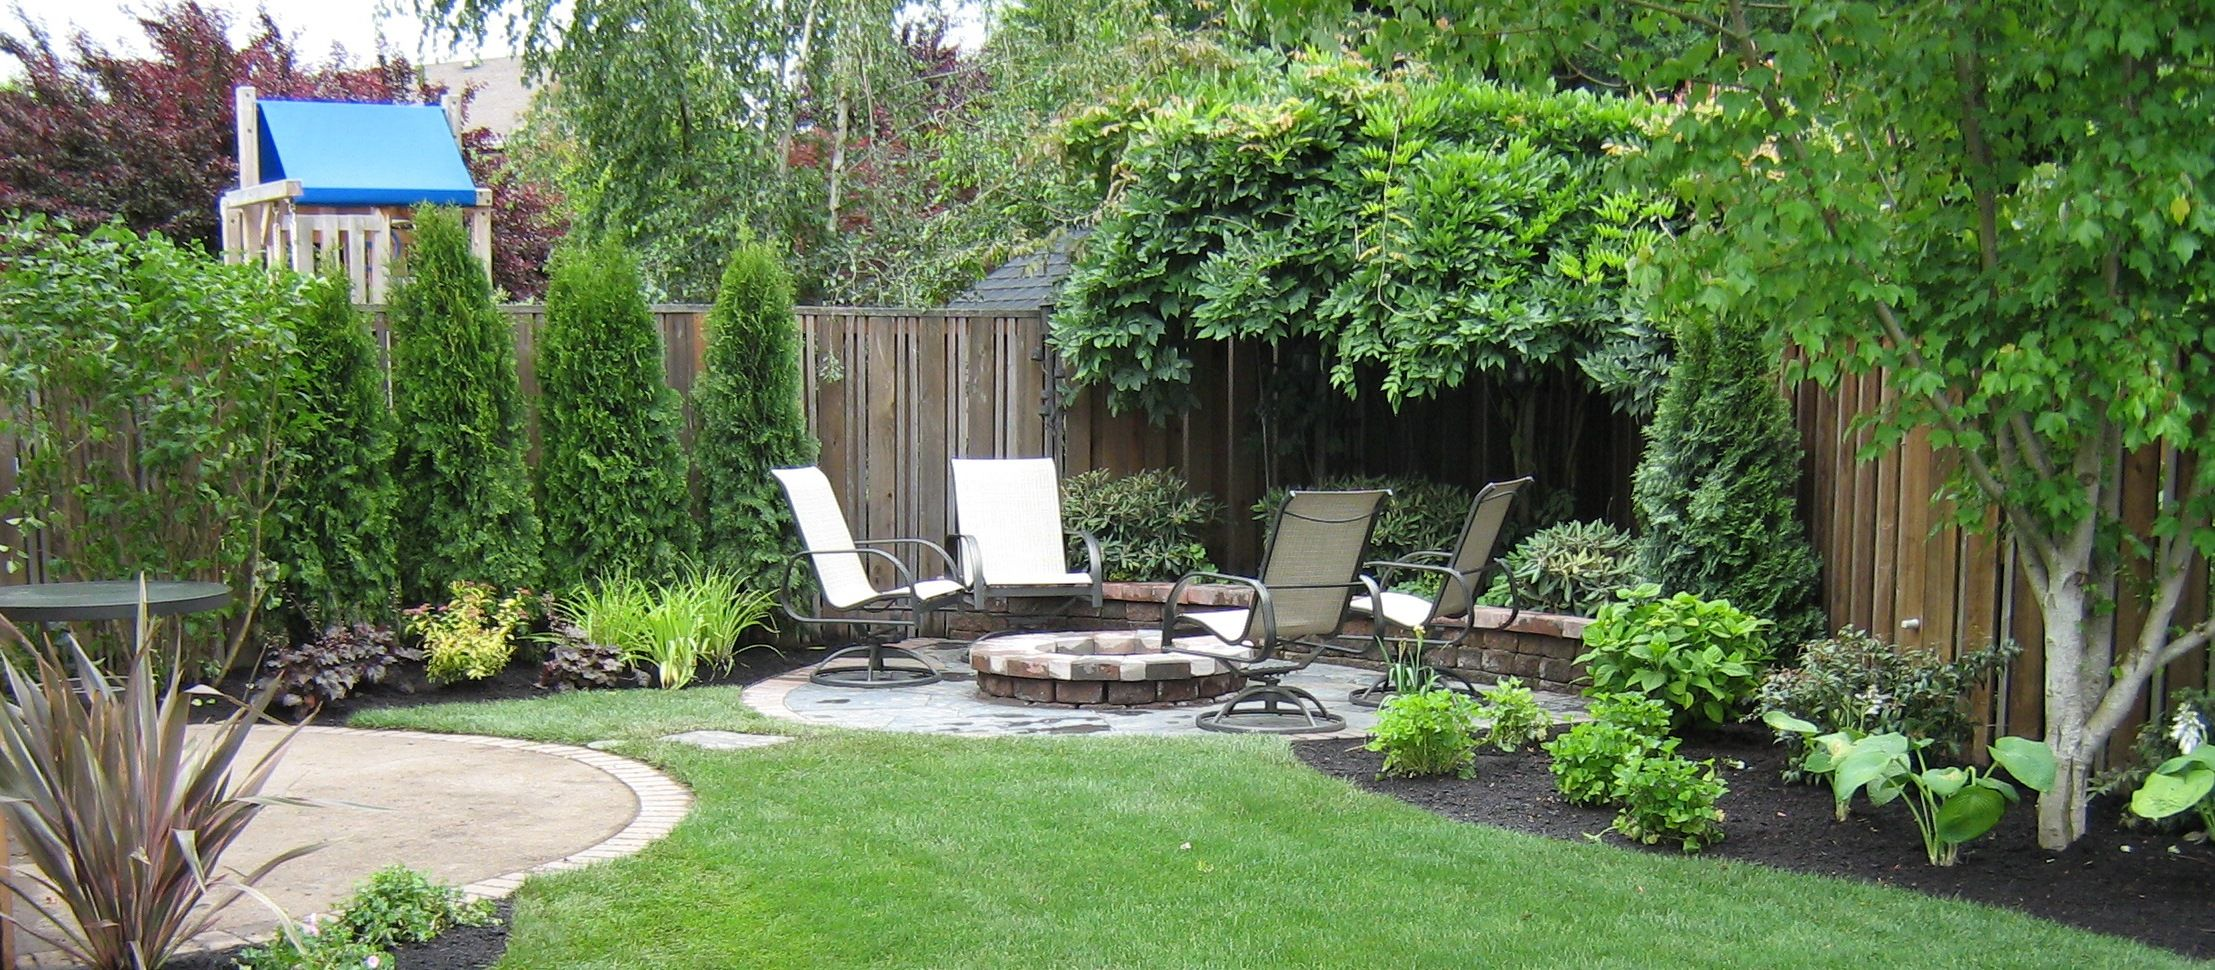 Garden Design Ideas For Small Backyards Of Small Backyard Landscaping Ideas Photos Garden Design